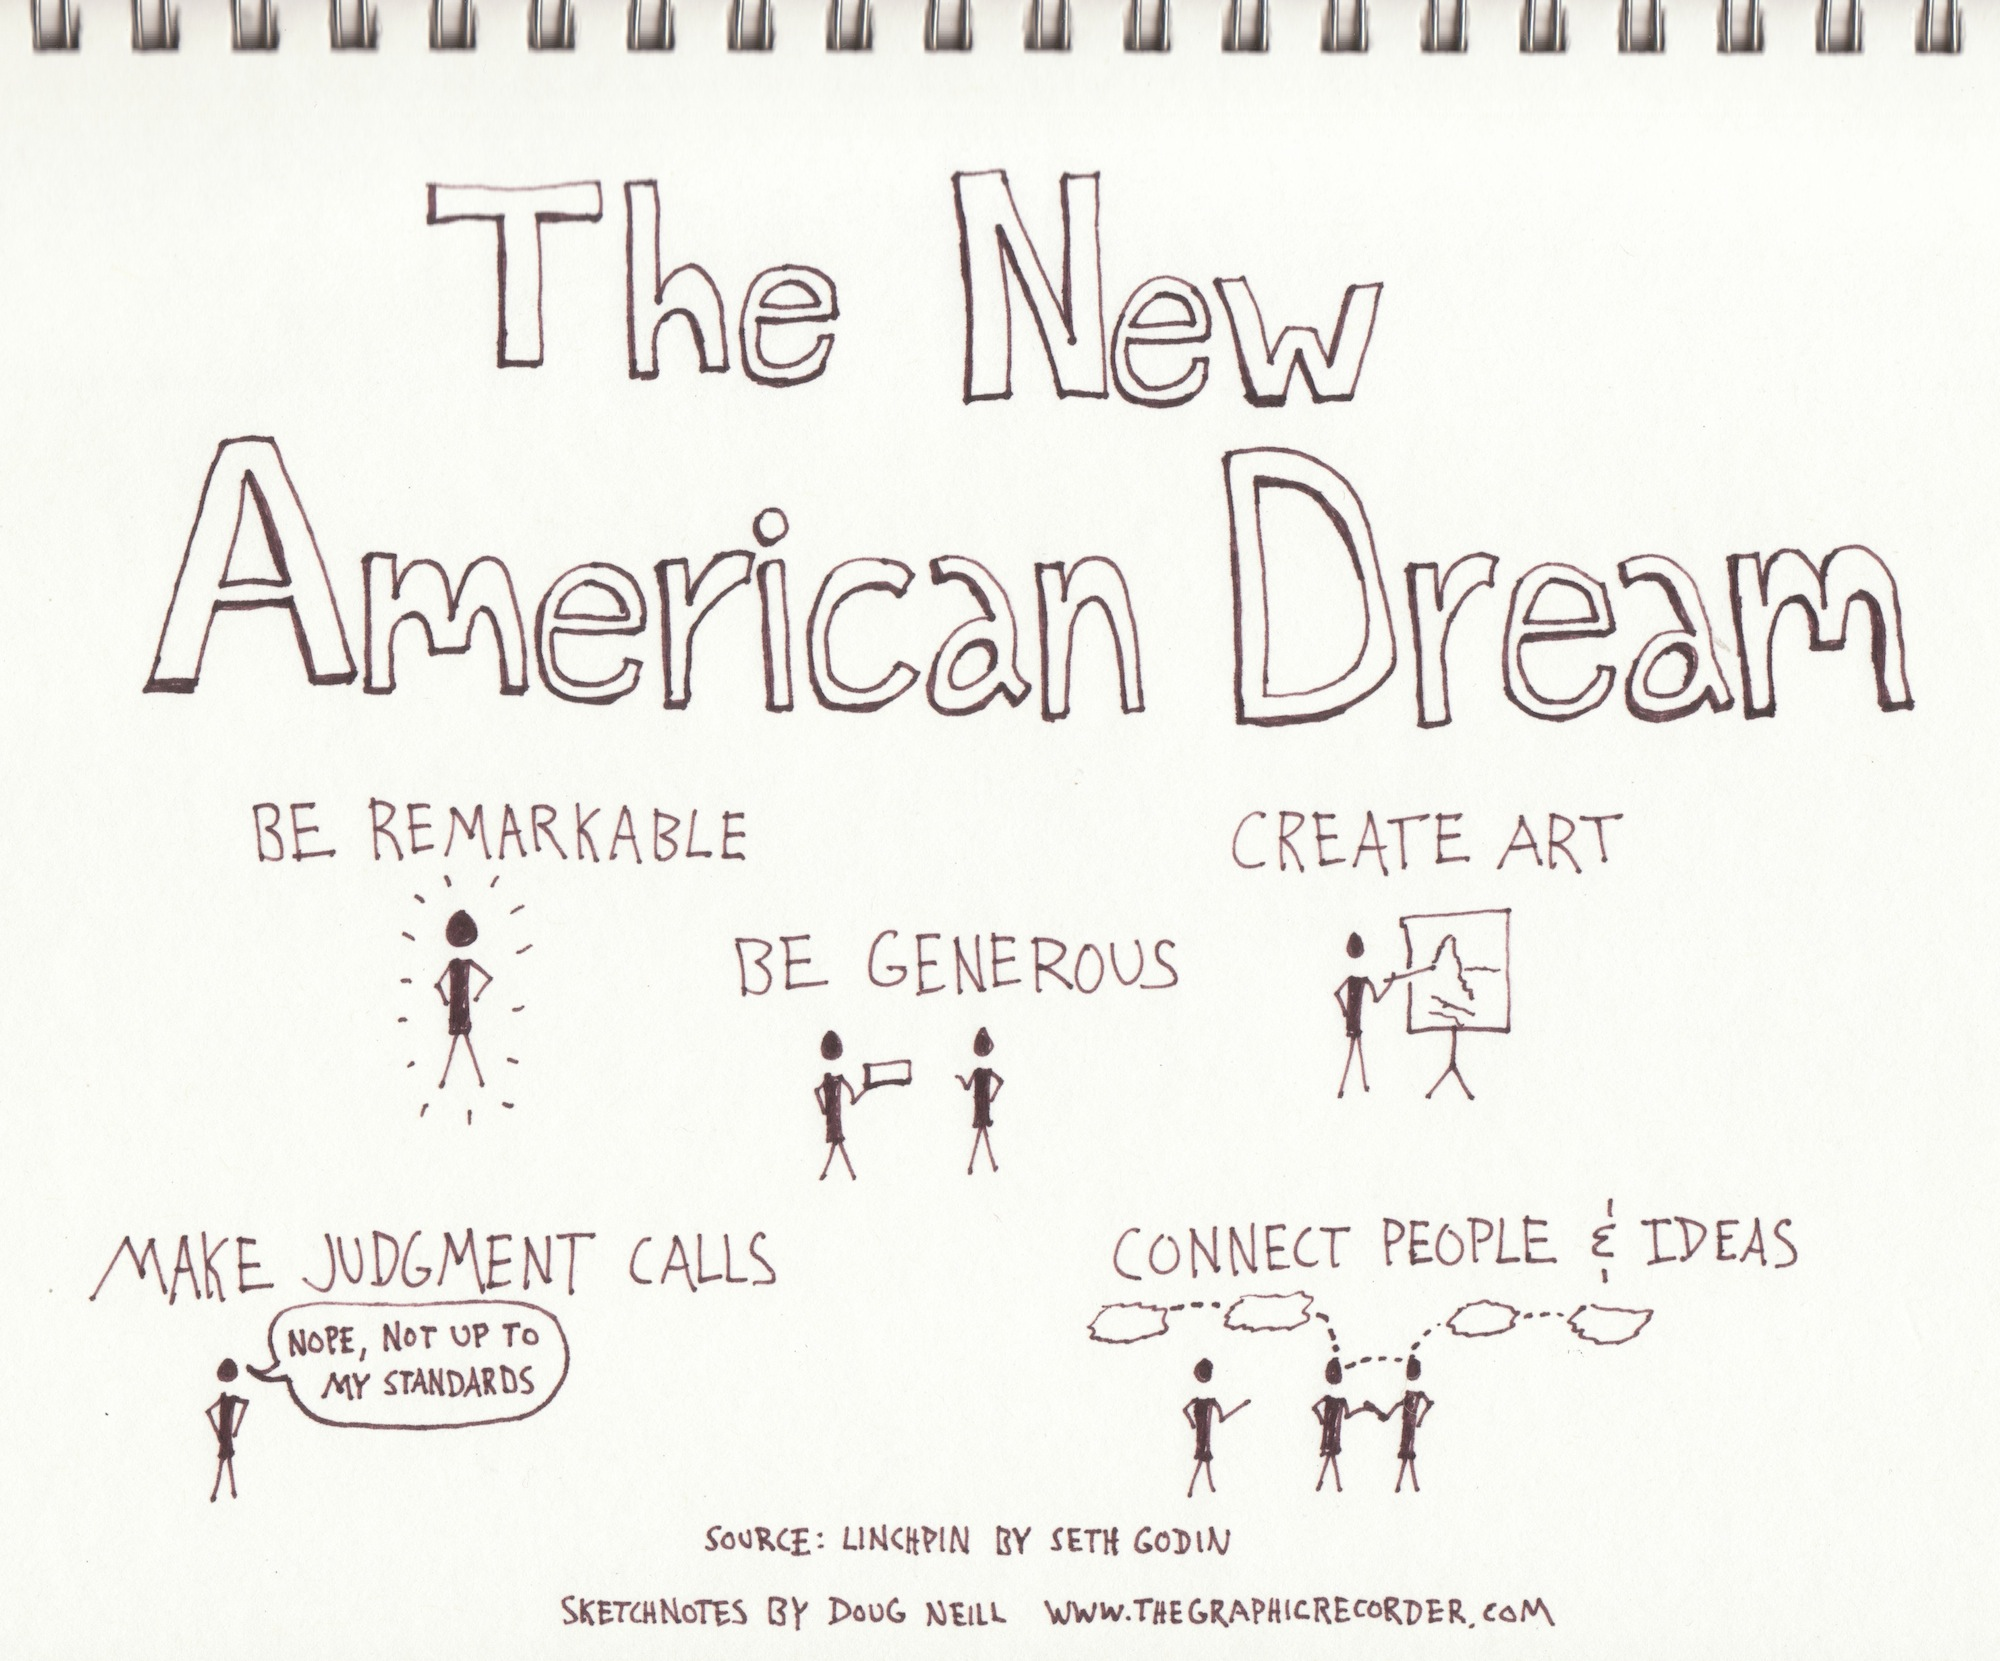 The Graphic Recorder - Doug Neill Sketchnotes - The New American Dream - Seth Godin - Linchpin